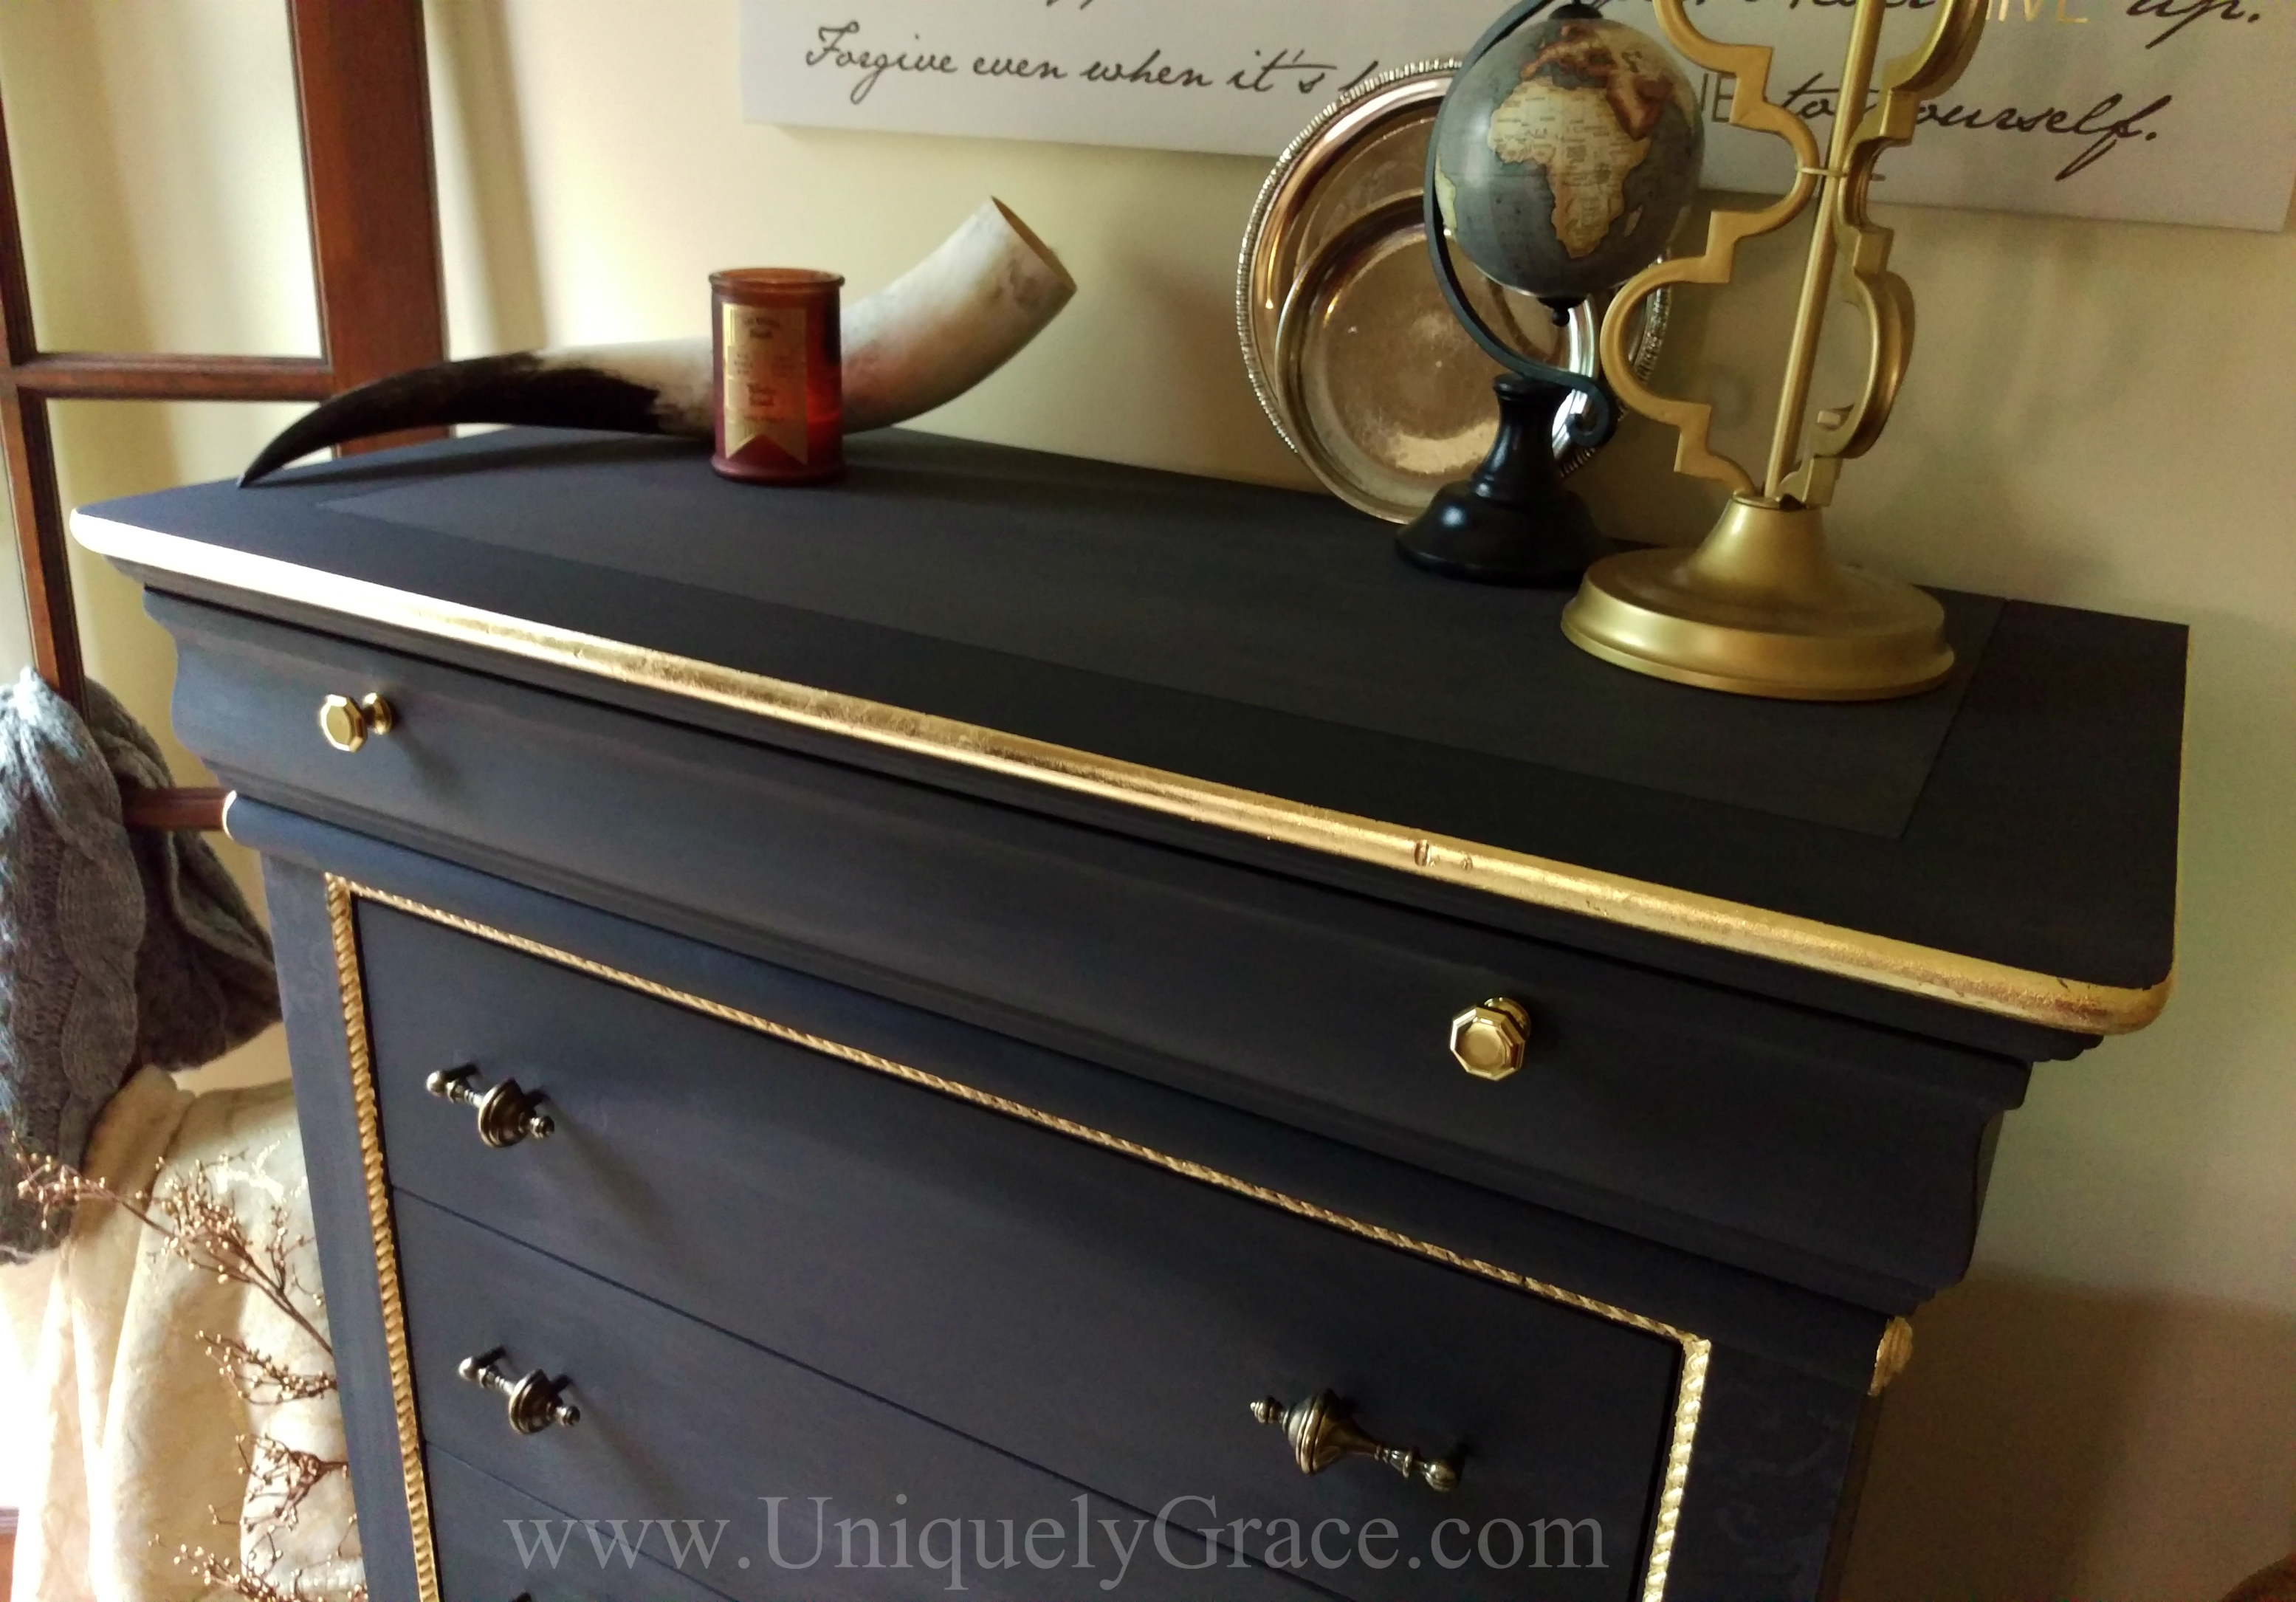 LOGO Top Two Toned Black Truffle Pure Original Uniquely Grace Gold Leaf  Dreser Pulls Knobs